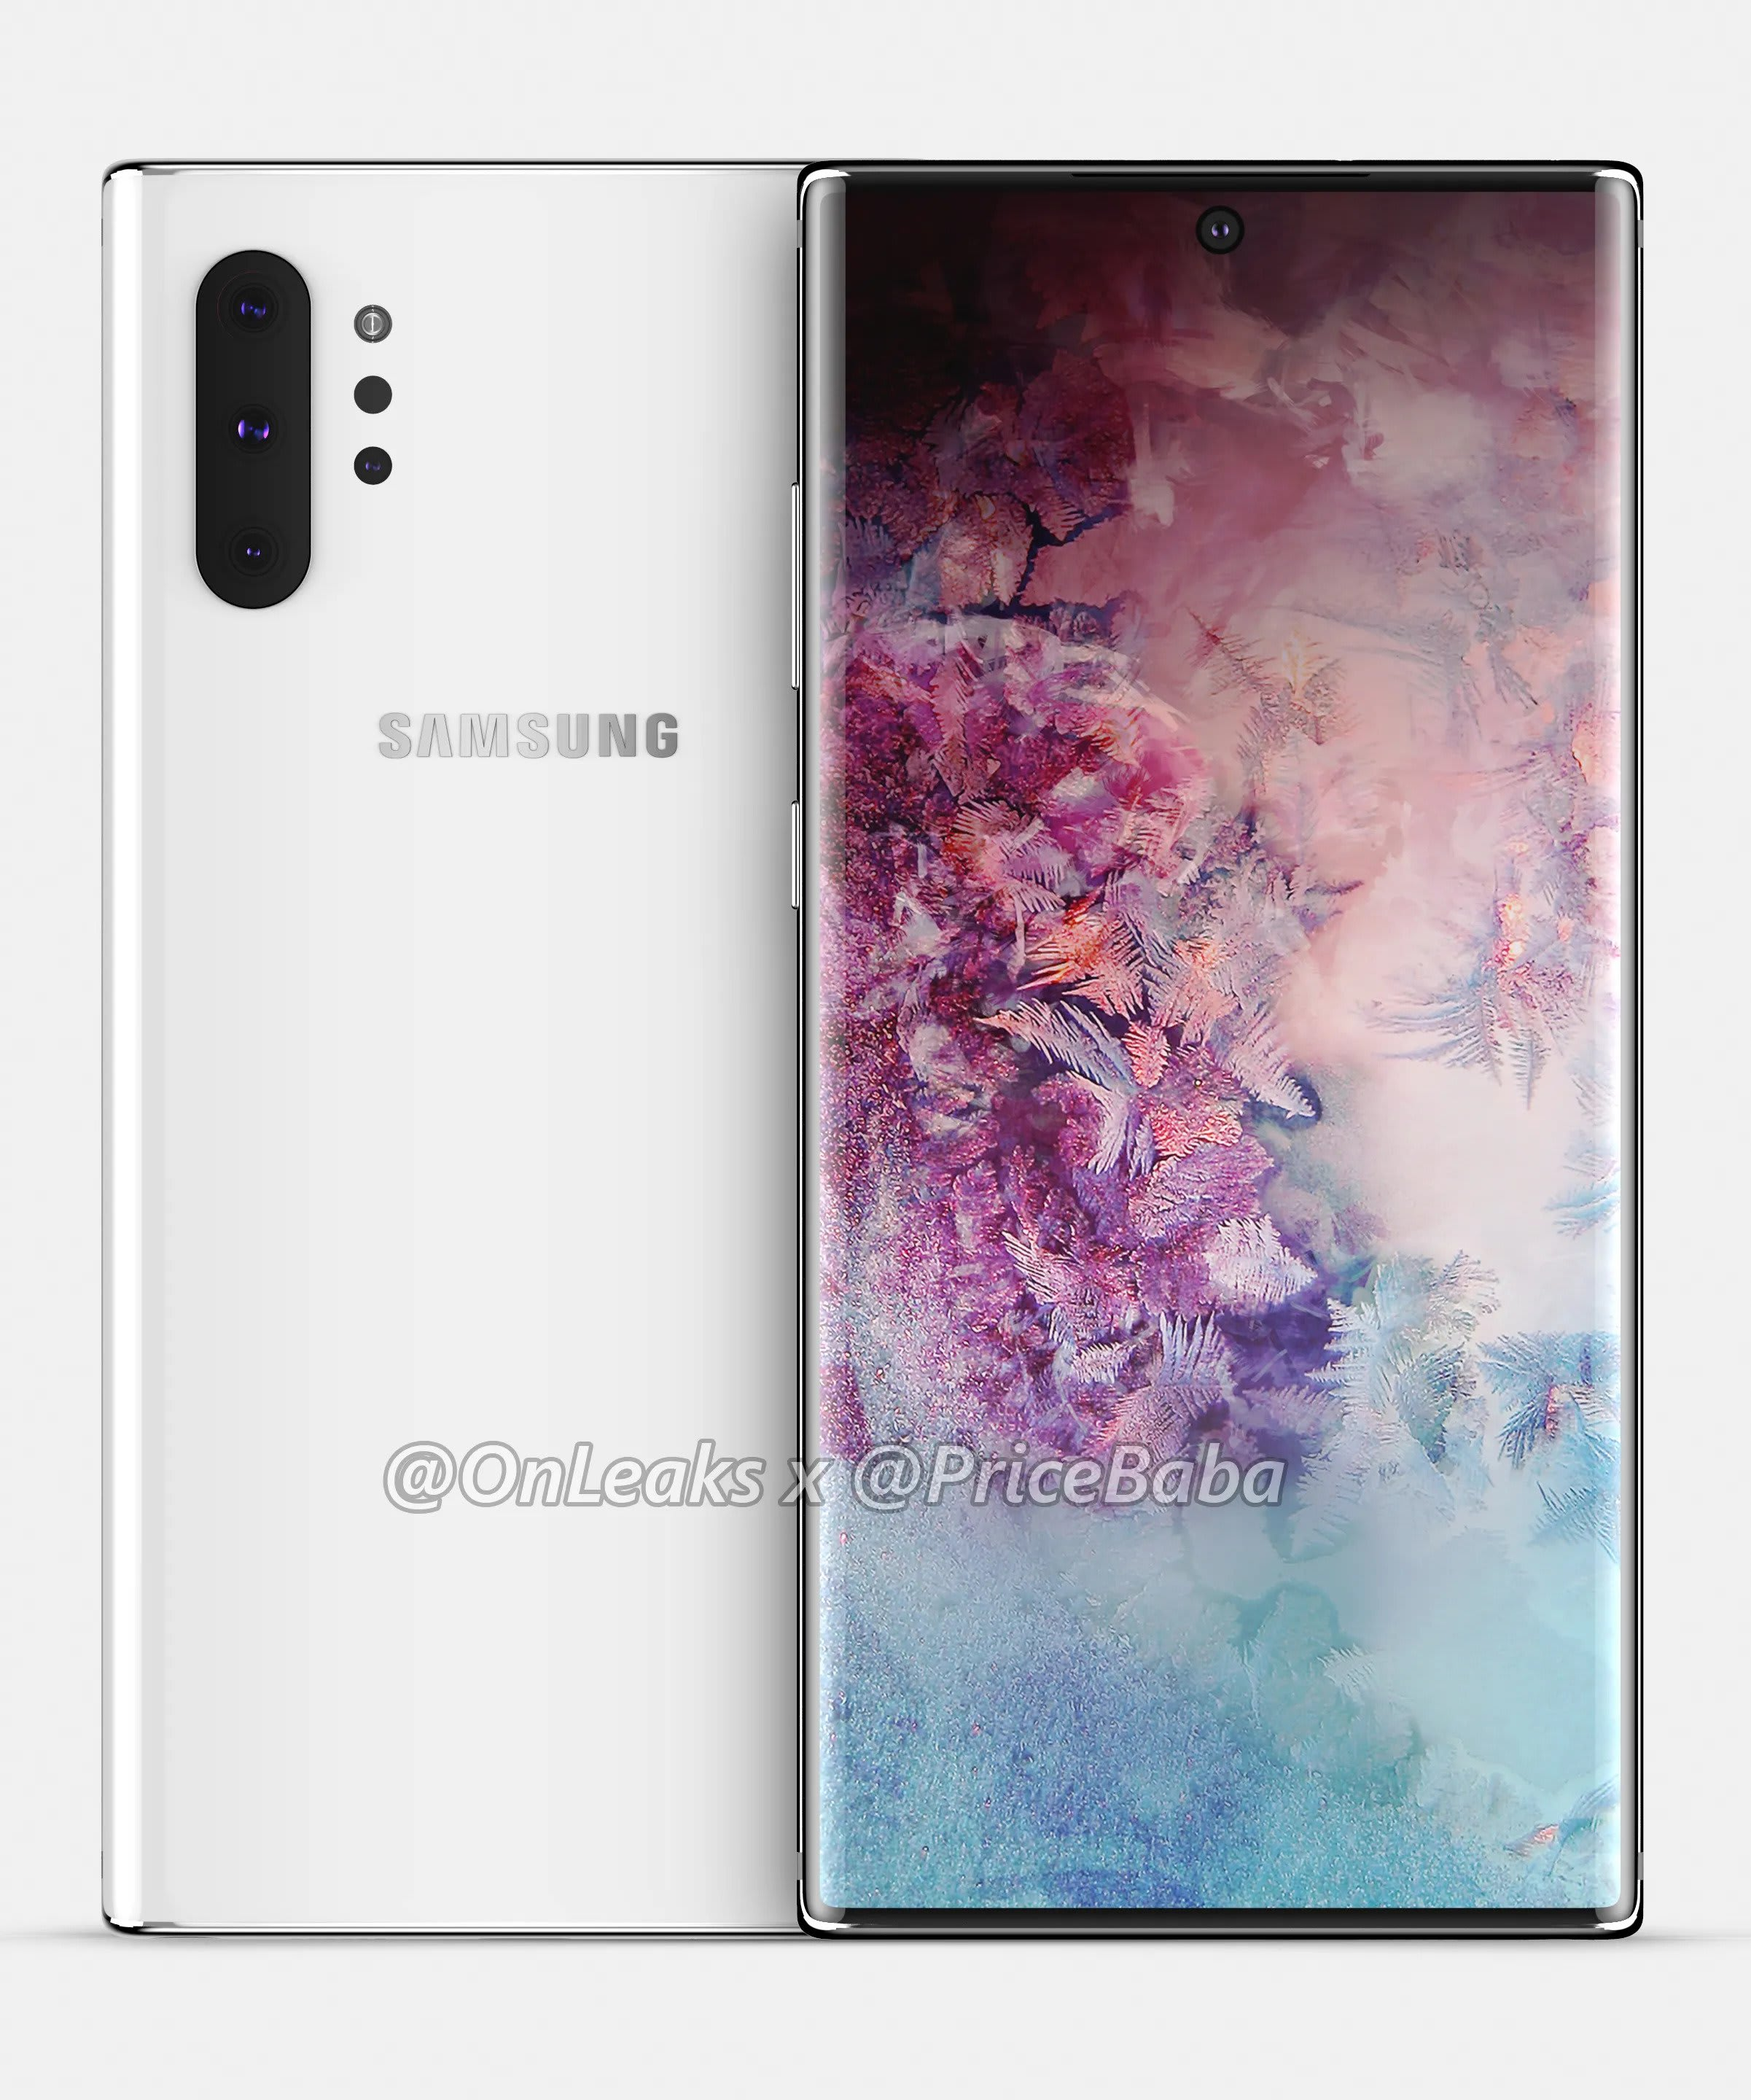 Samsung Galaxy Note 10 Pro Renders Leaked